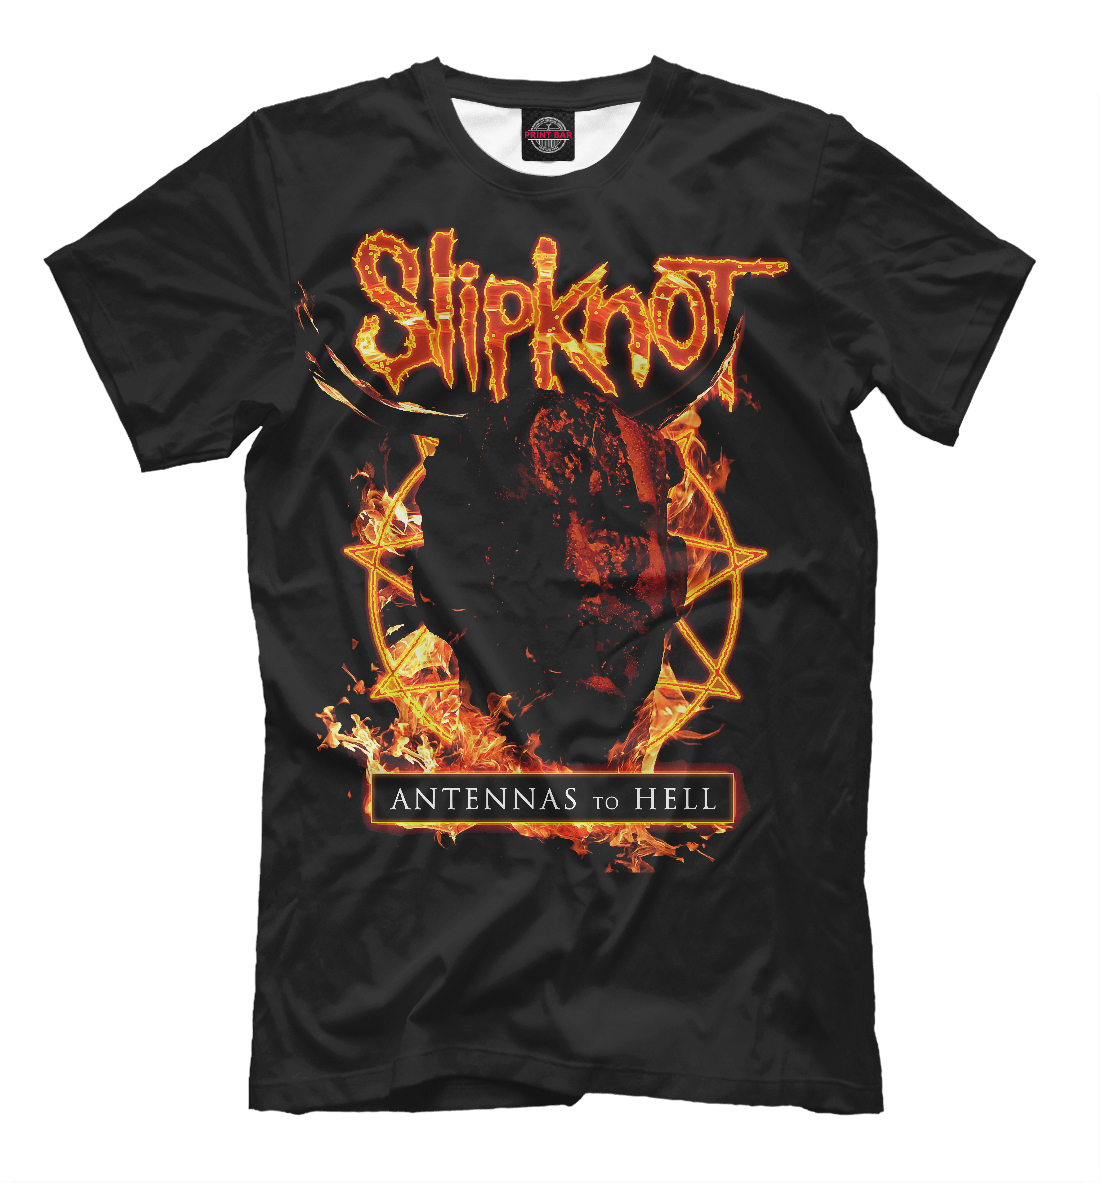 Купить Slipknot, Printbar, Футболки, SLI-632435-fut-2